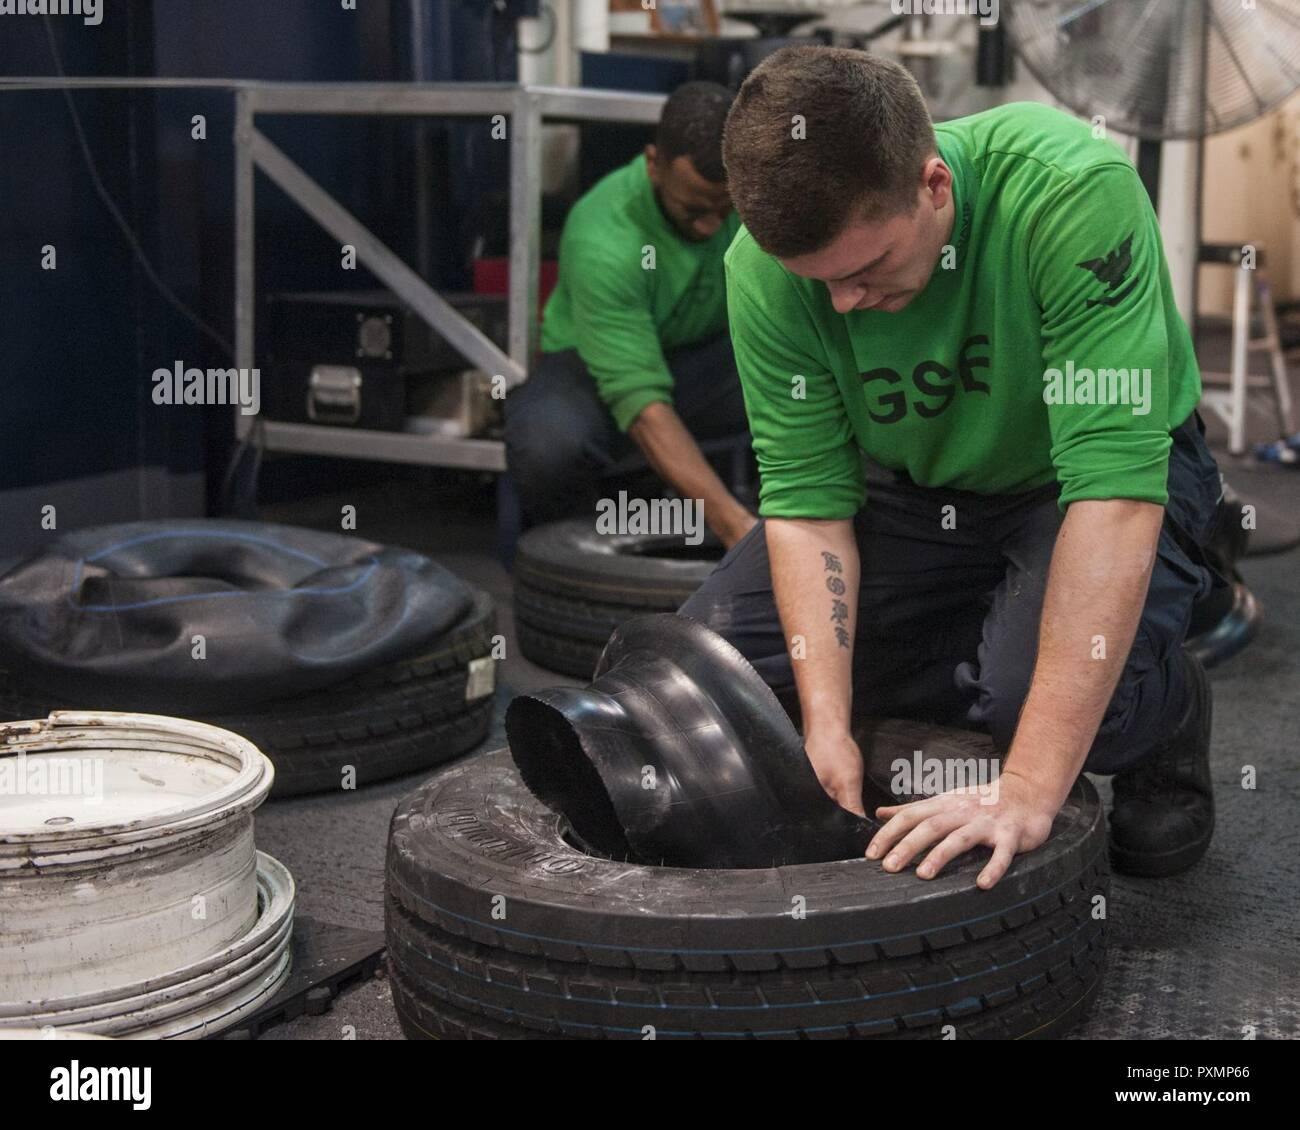 MEDITERRANEAN SEA (June 18, 2017) Aviation Support Equipment Technician 3rd Class Trent Davis powders tires and inner tubes in the IM-4 shop aboard the aircraft carrier USS George H.W. Bush (CVN 77) (GHWB). GHWB, part of the George H.W. Bush Carrier Strike Group (GHWBCSG), is conducting naval operations in the U.S. 6th Fleet area of operations in support of U.S. national security interests in Europe and Africa. Stock Photo